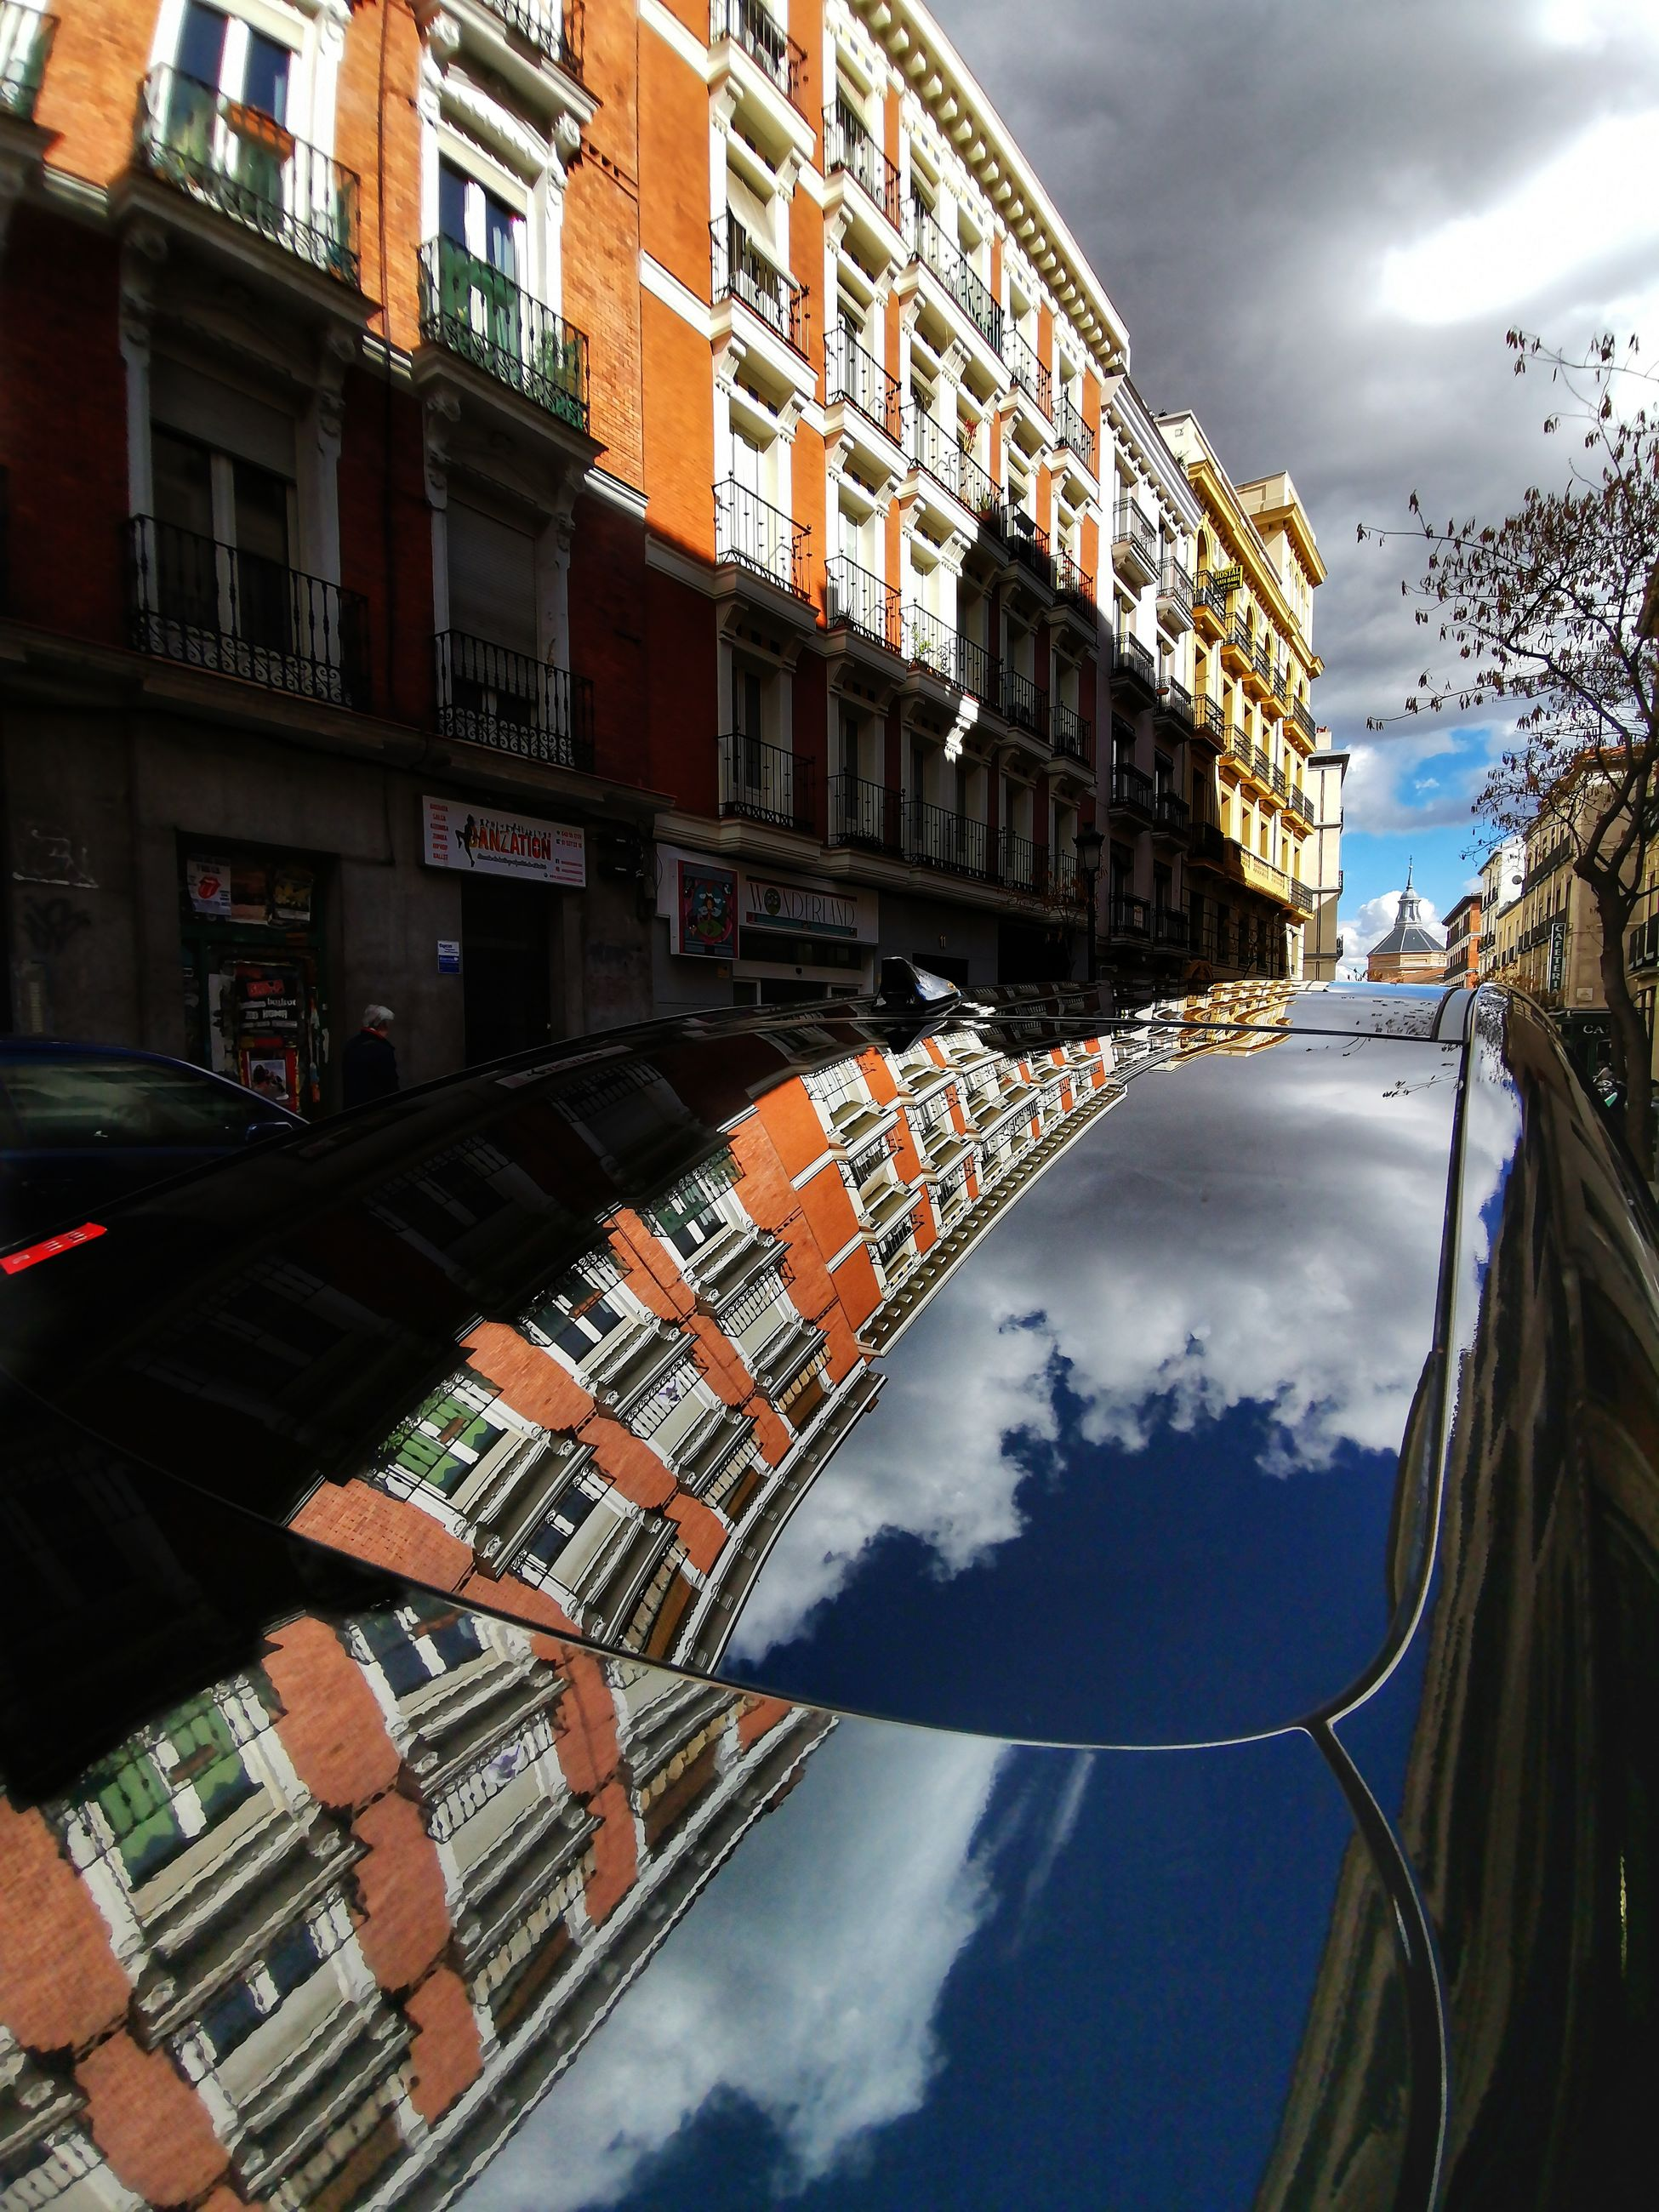 building exterior, cloud - sky, architecture, built structure, city, sky, nature, building, residential district, reflection, day, transportation, outdoors, mode of transportation, no people, canal, water, travel, street